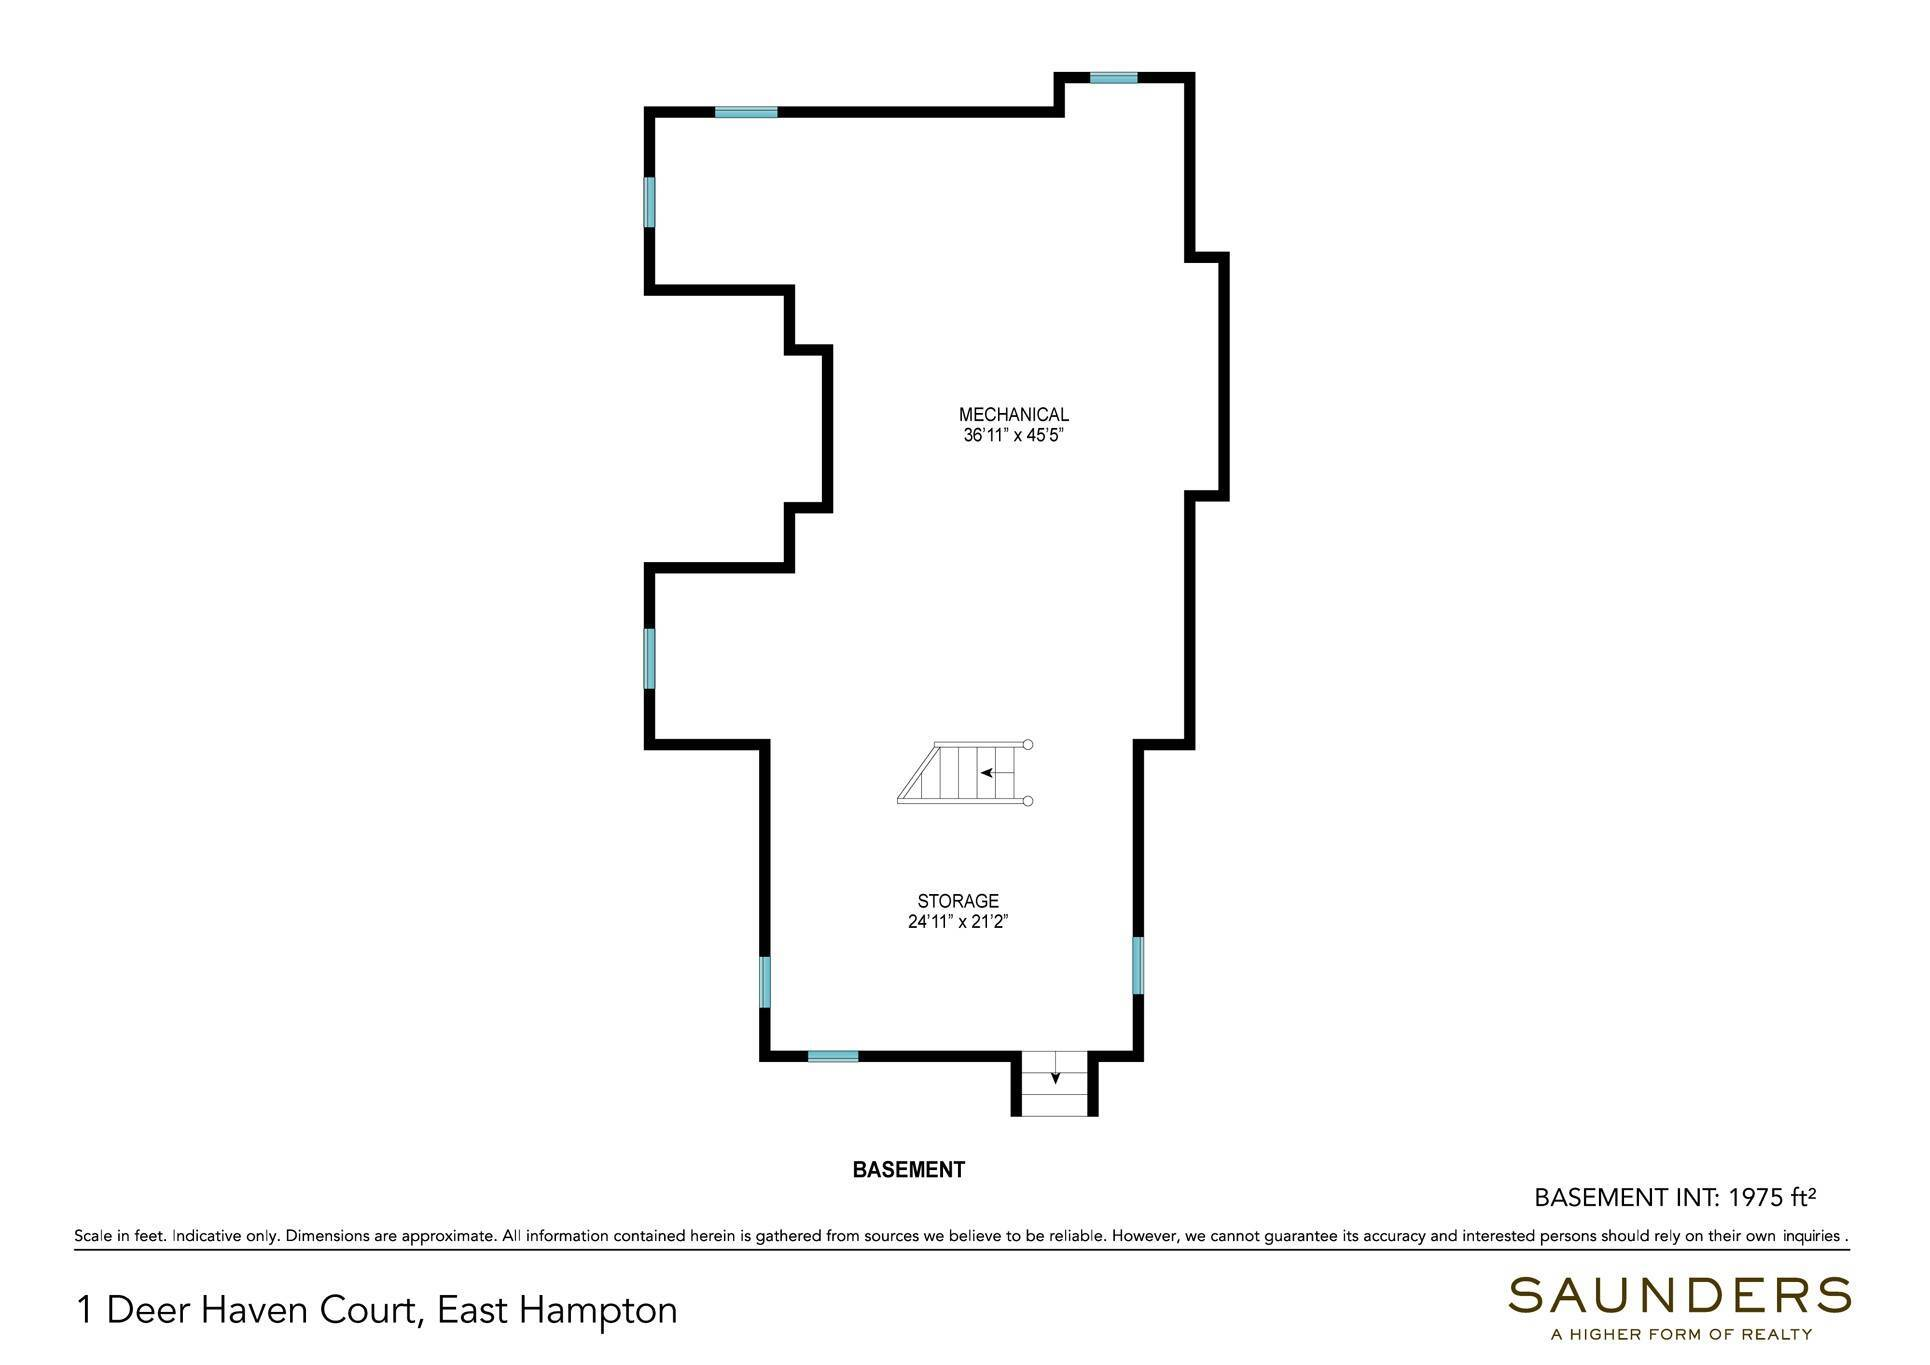 Single Family Homes for Sale at East Hampton Room For Tennis 2+ Acres 1 Deer Haven Court, East Hampton, East Hampton Town, NY 11937